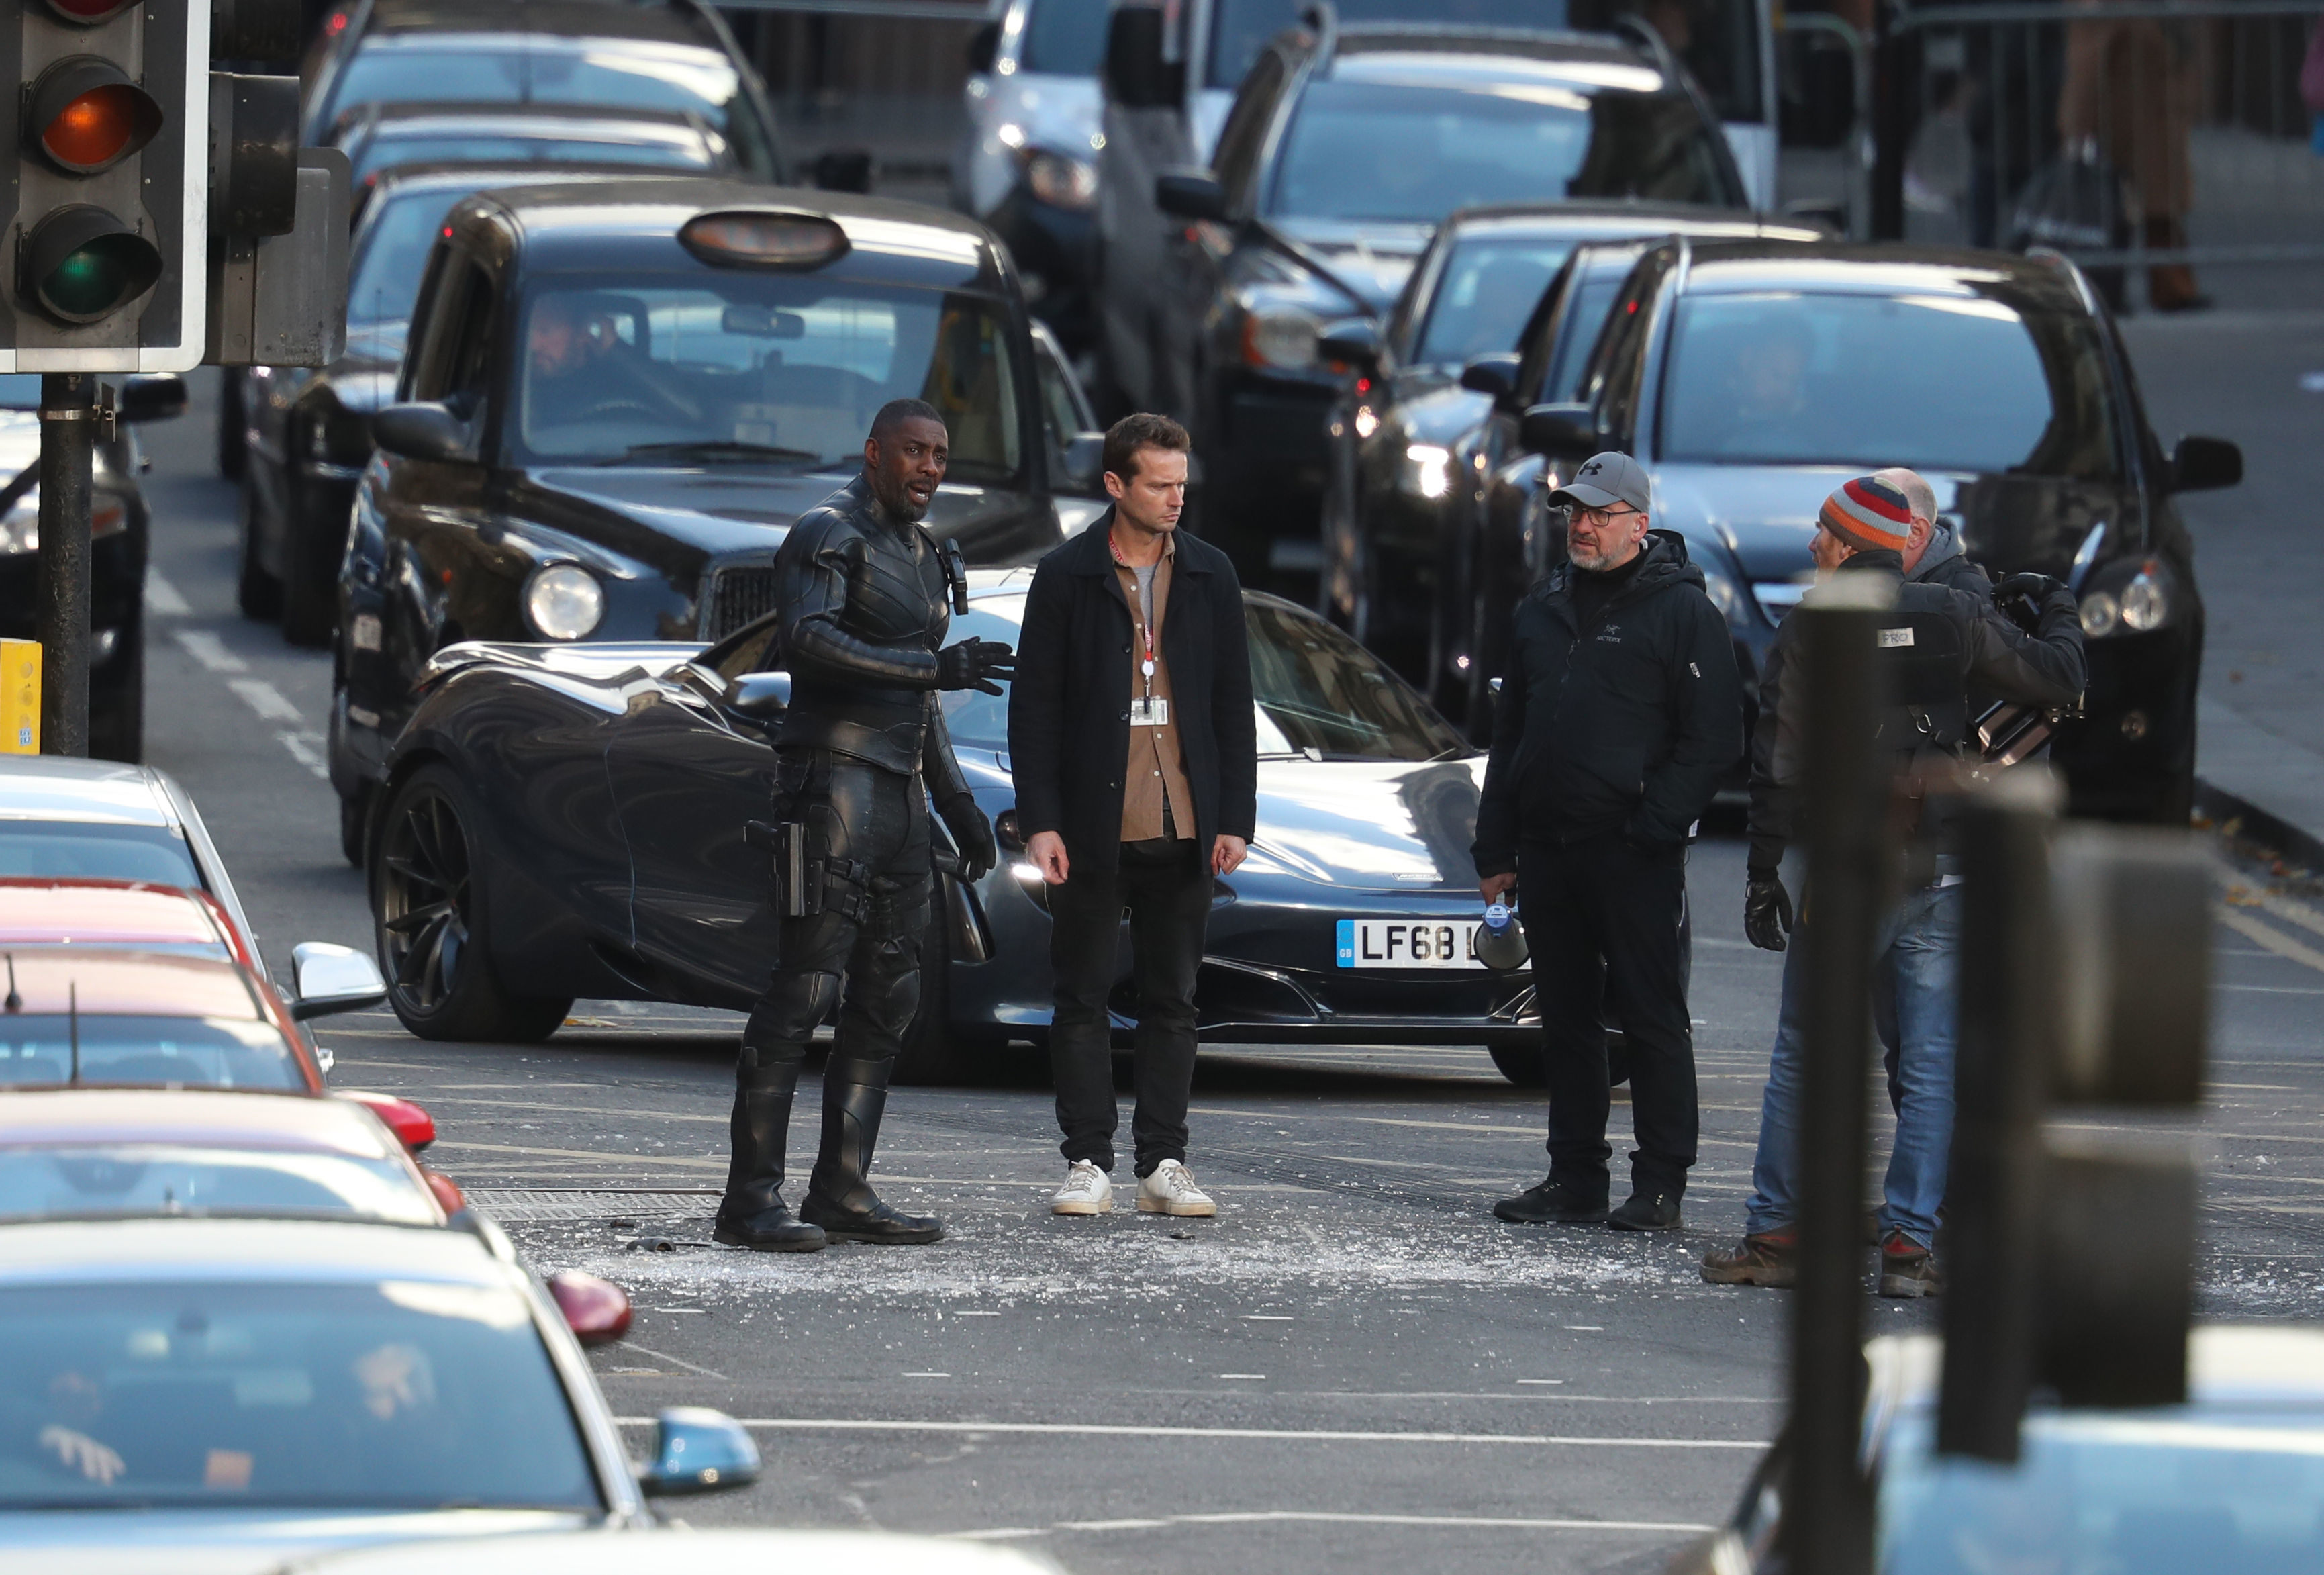 Actor Idris Elba during filming in Glasgow city centre for a new Fast and Furious franchise movie